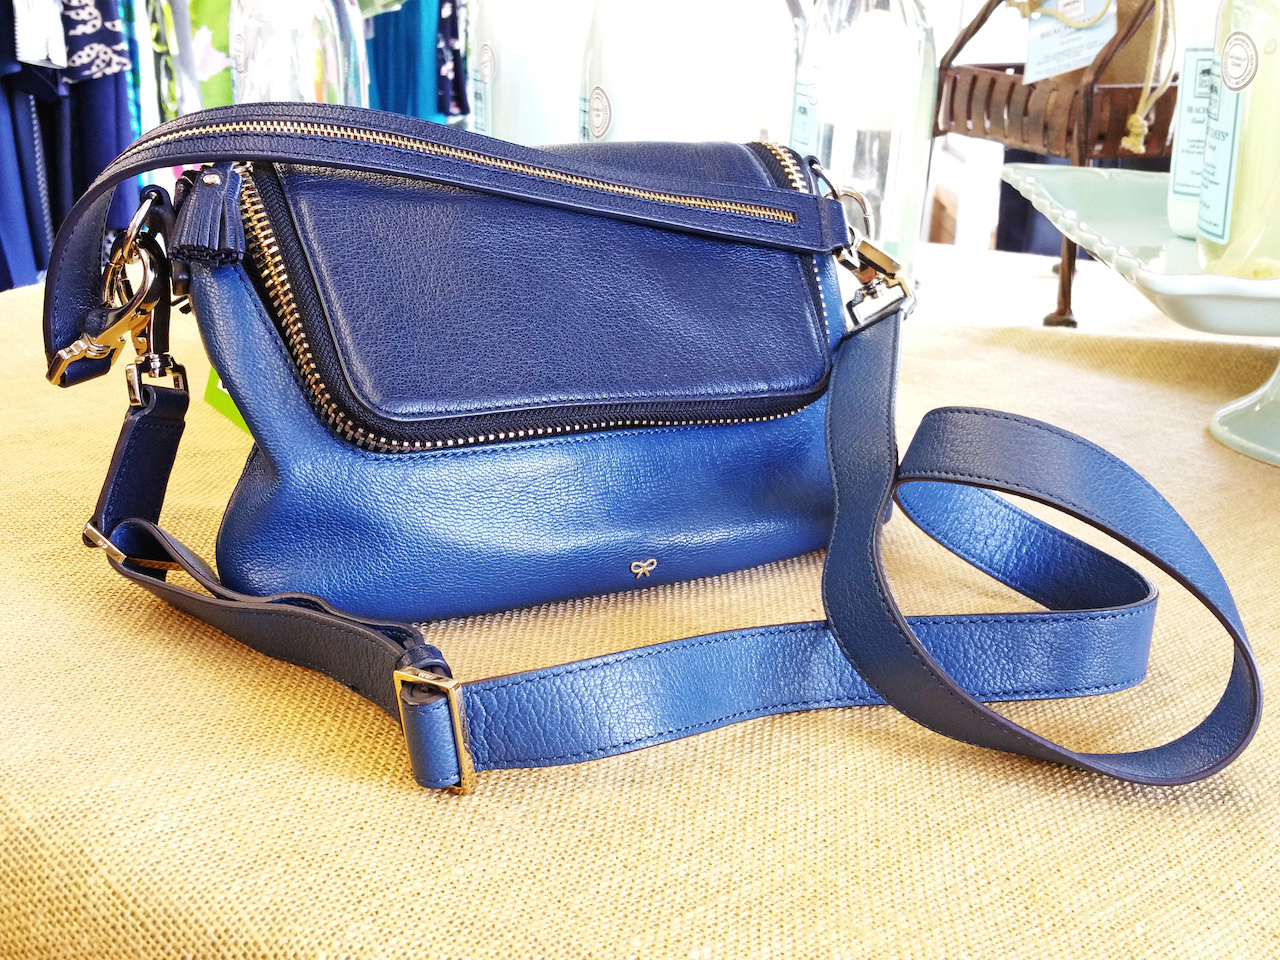 Anya Hindmarch purse, $275, at Second Hand Rose